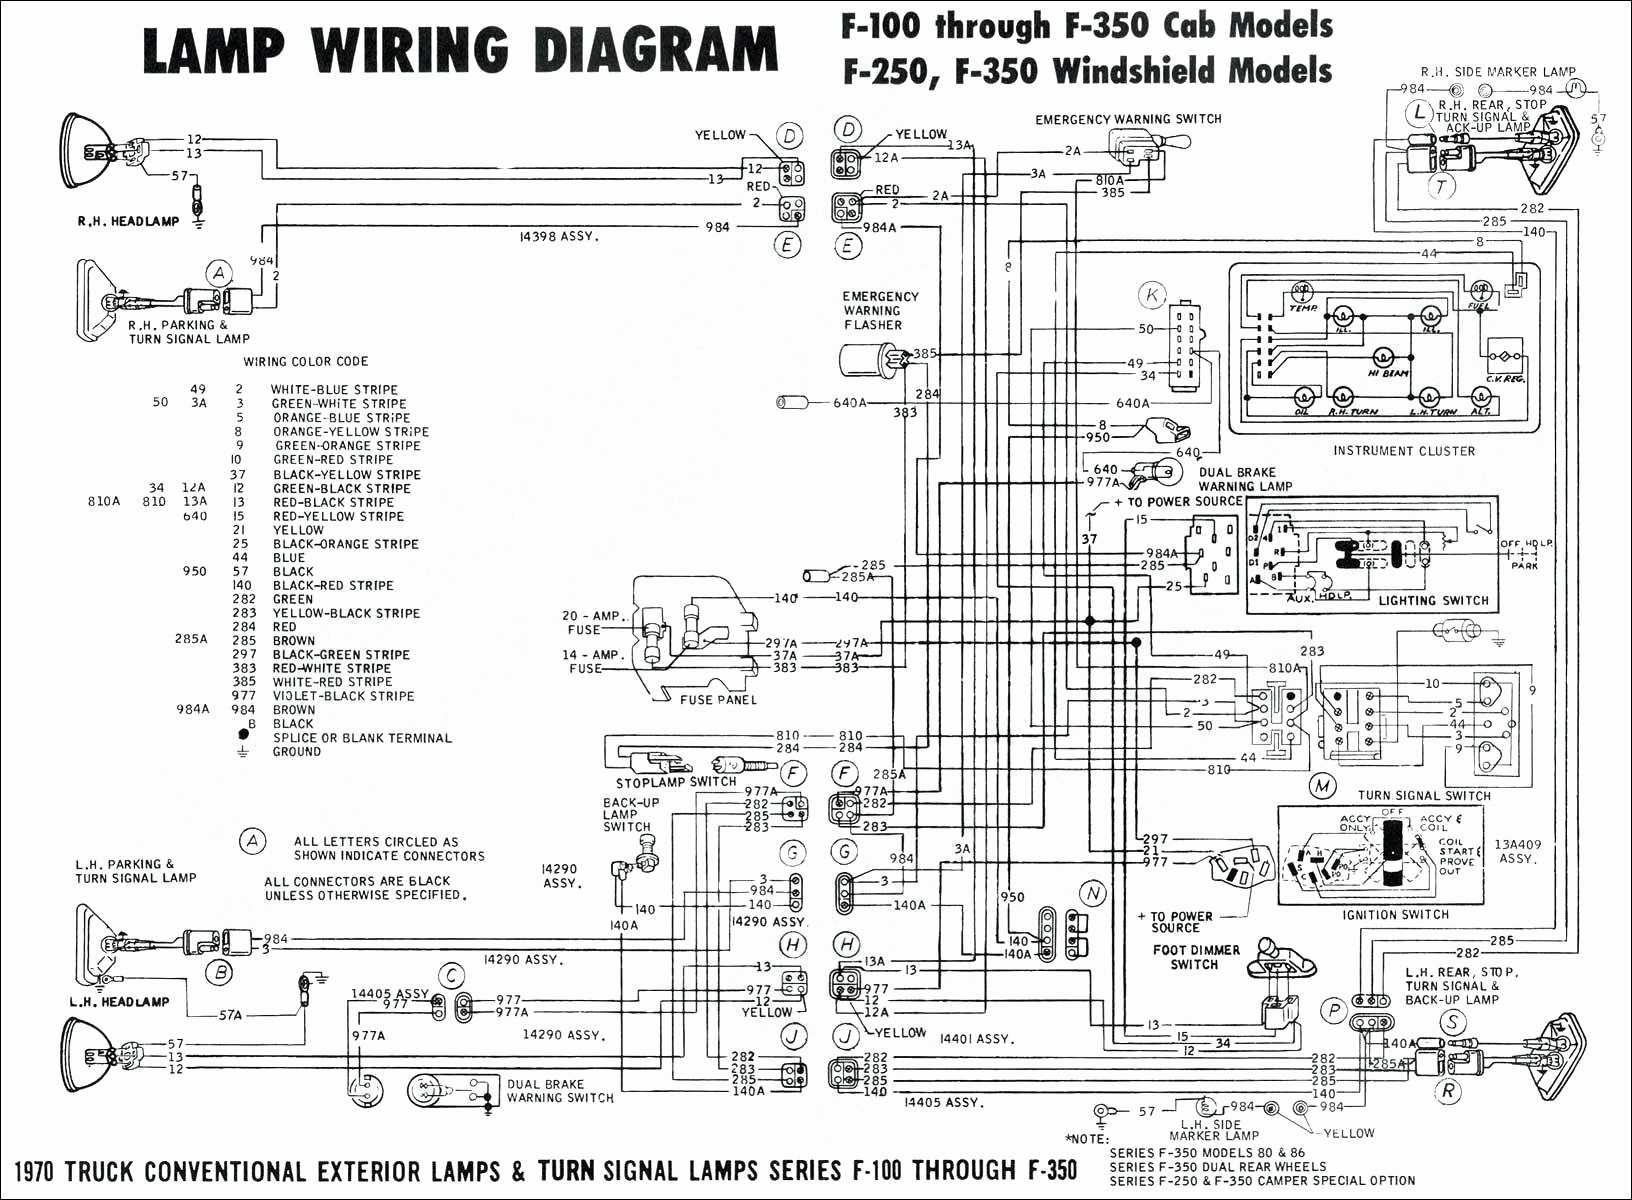 Immersion Heater Wiring Diagram Wiring Diagram Immersion